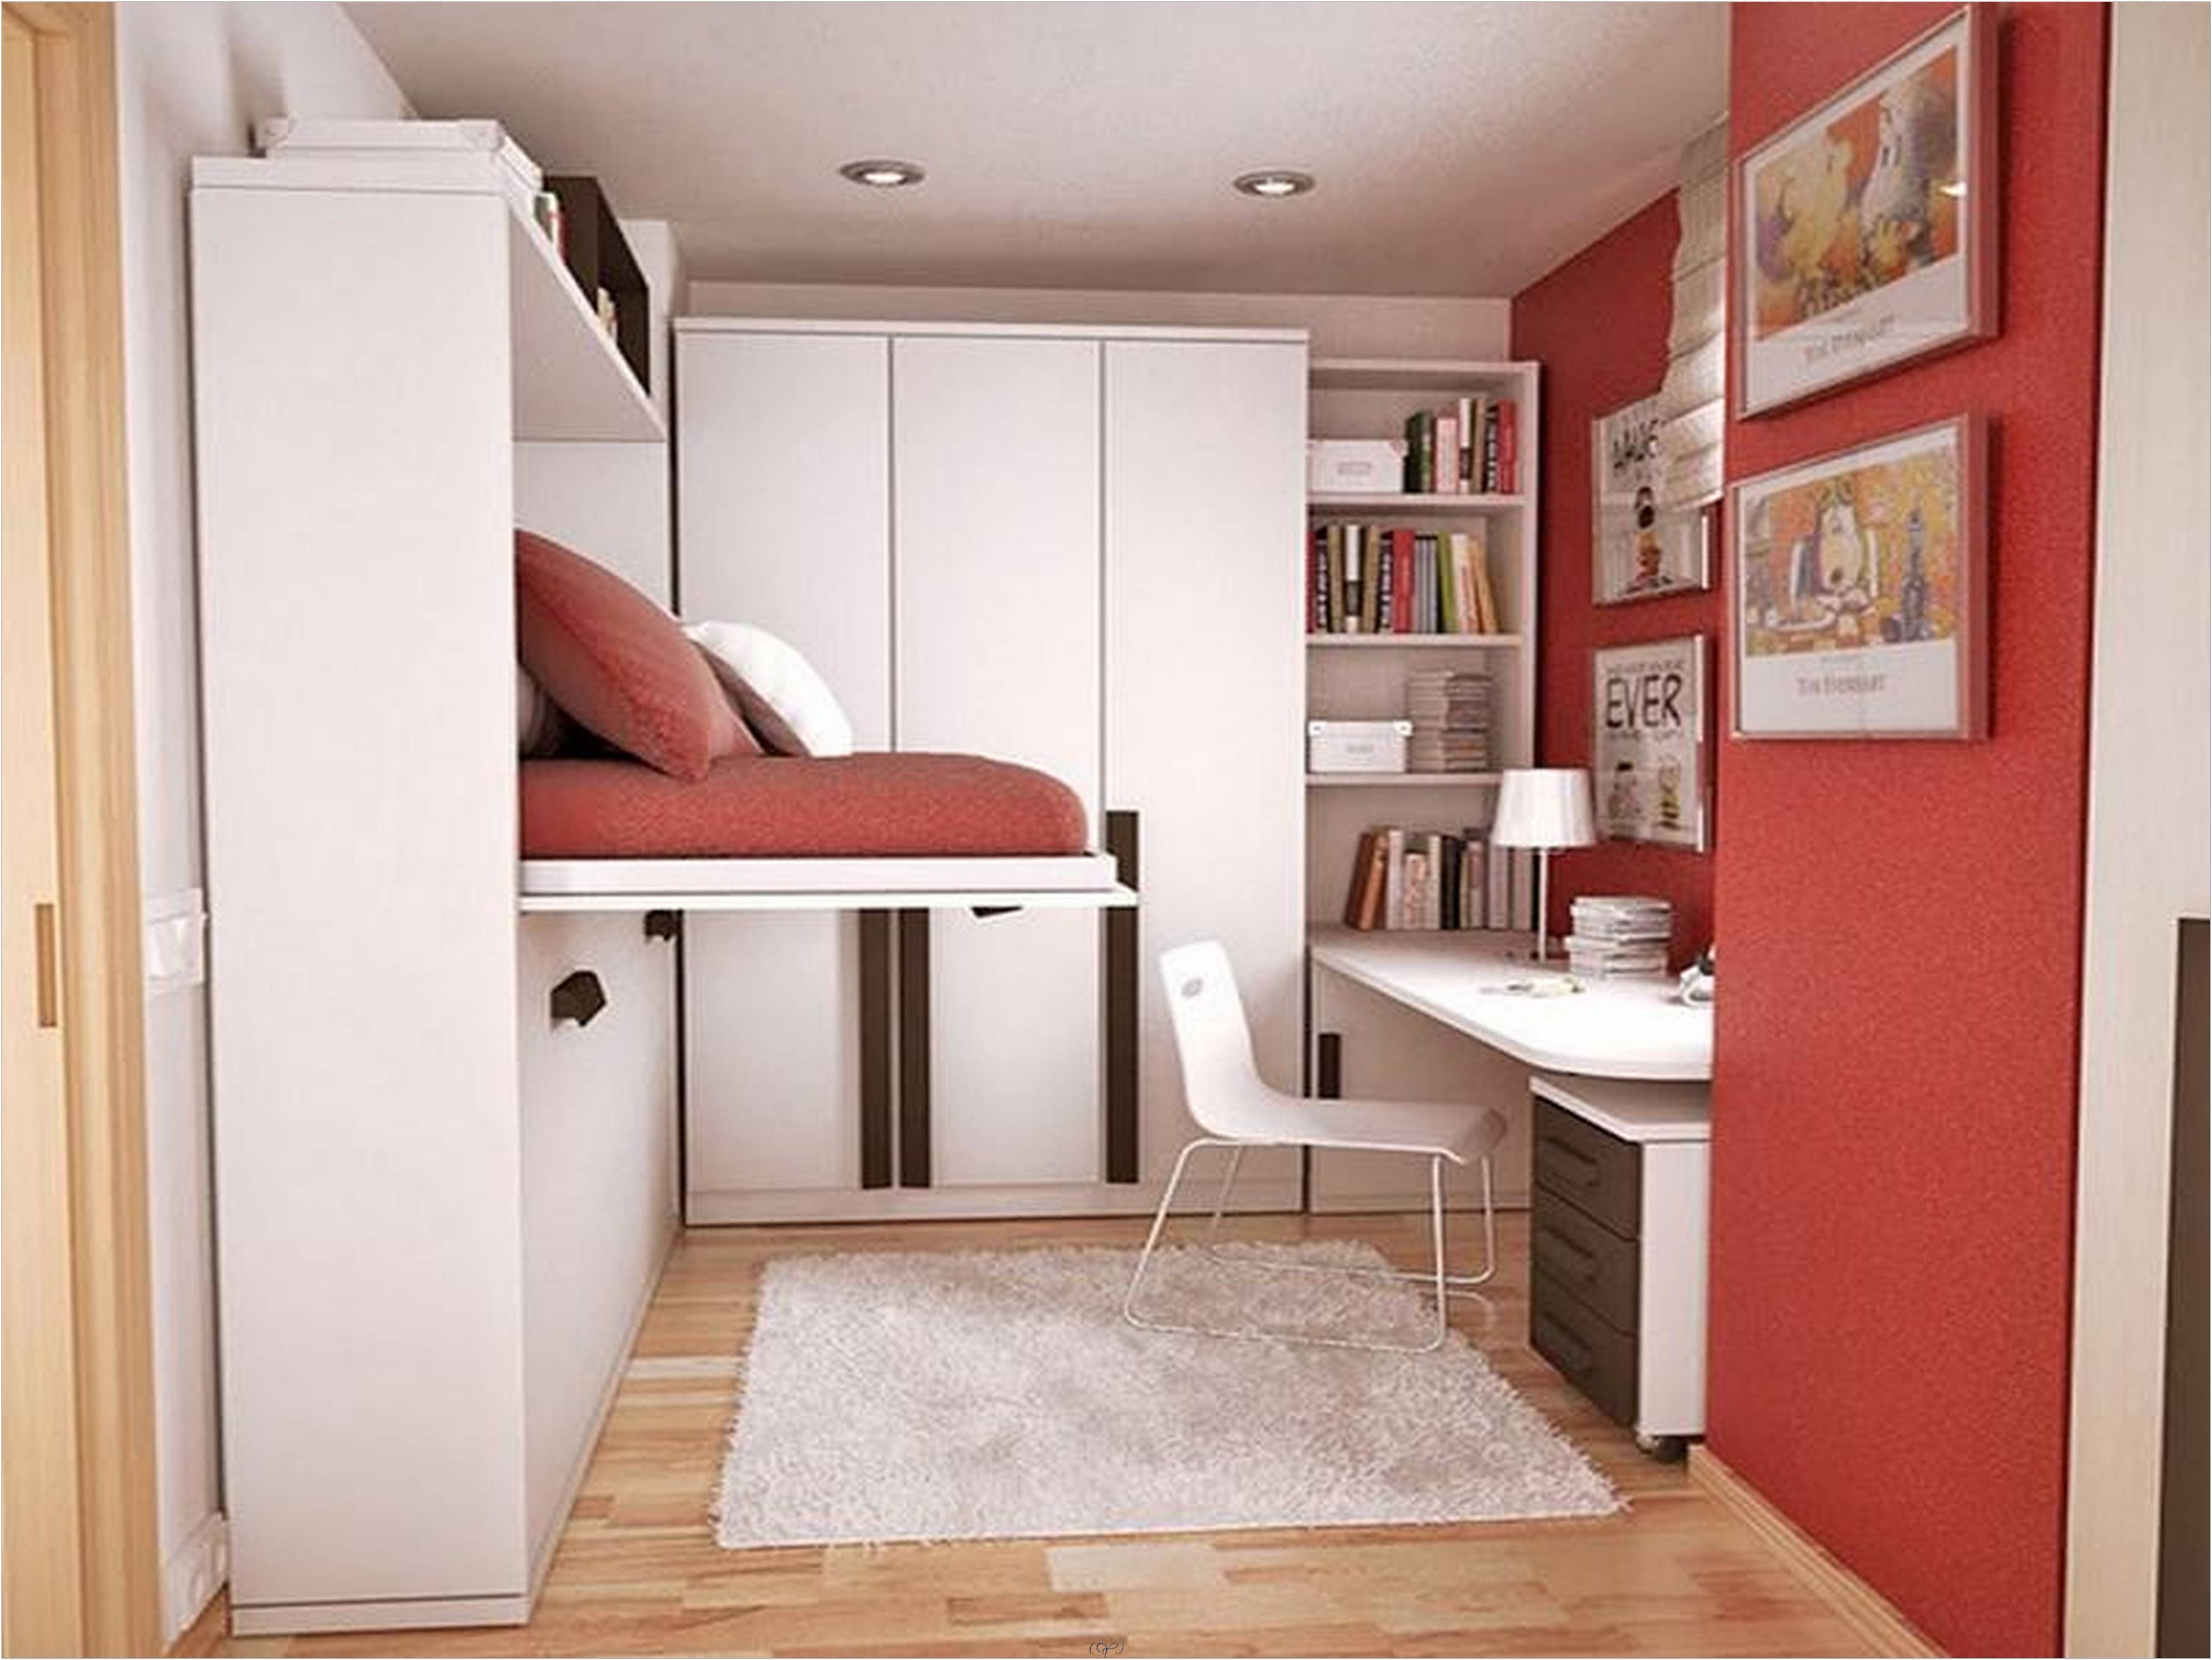 Bedroom Space Saving Ideas Small Bedrooms Diy Teen Homes Decor